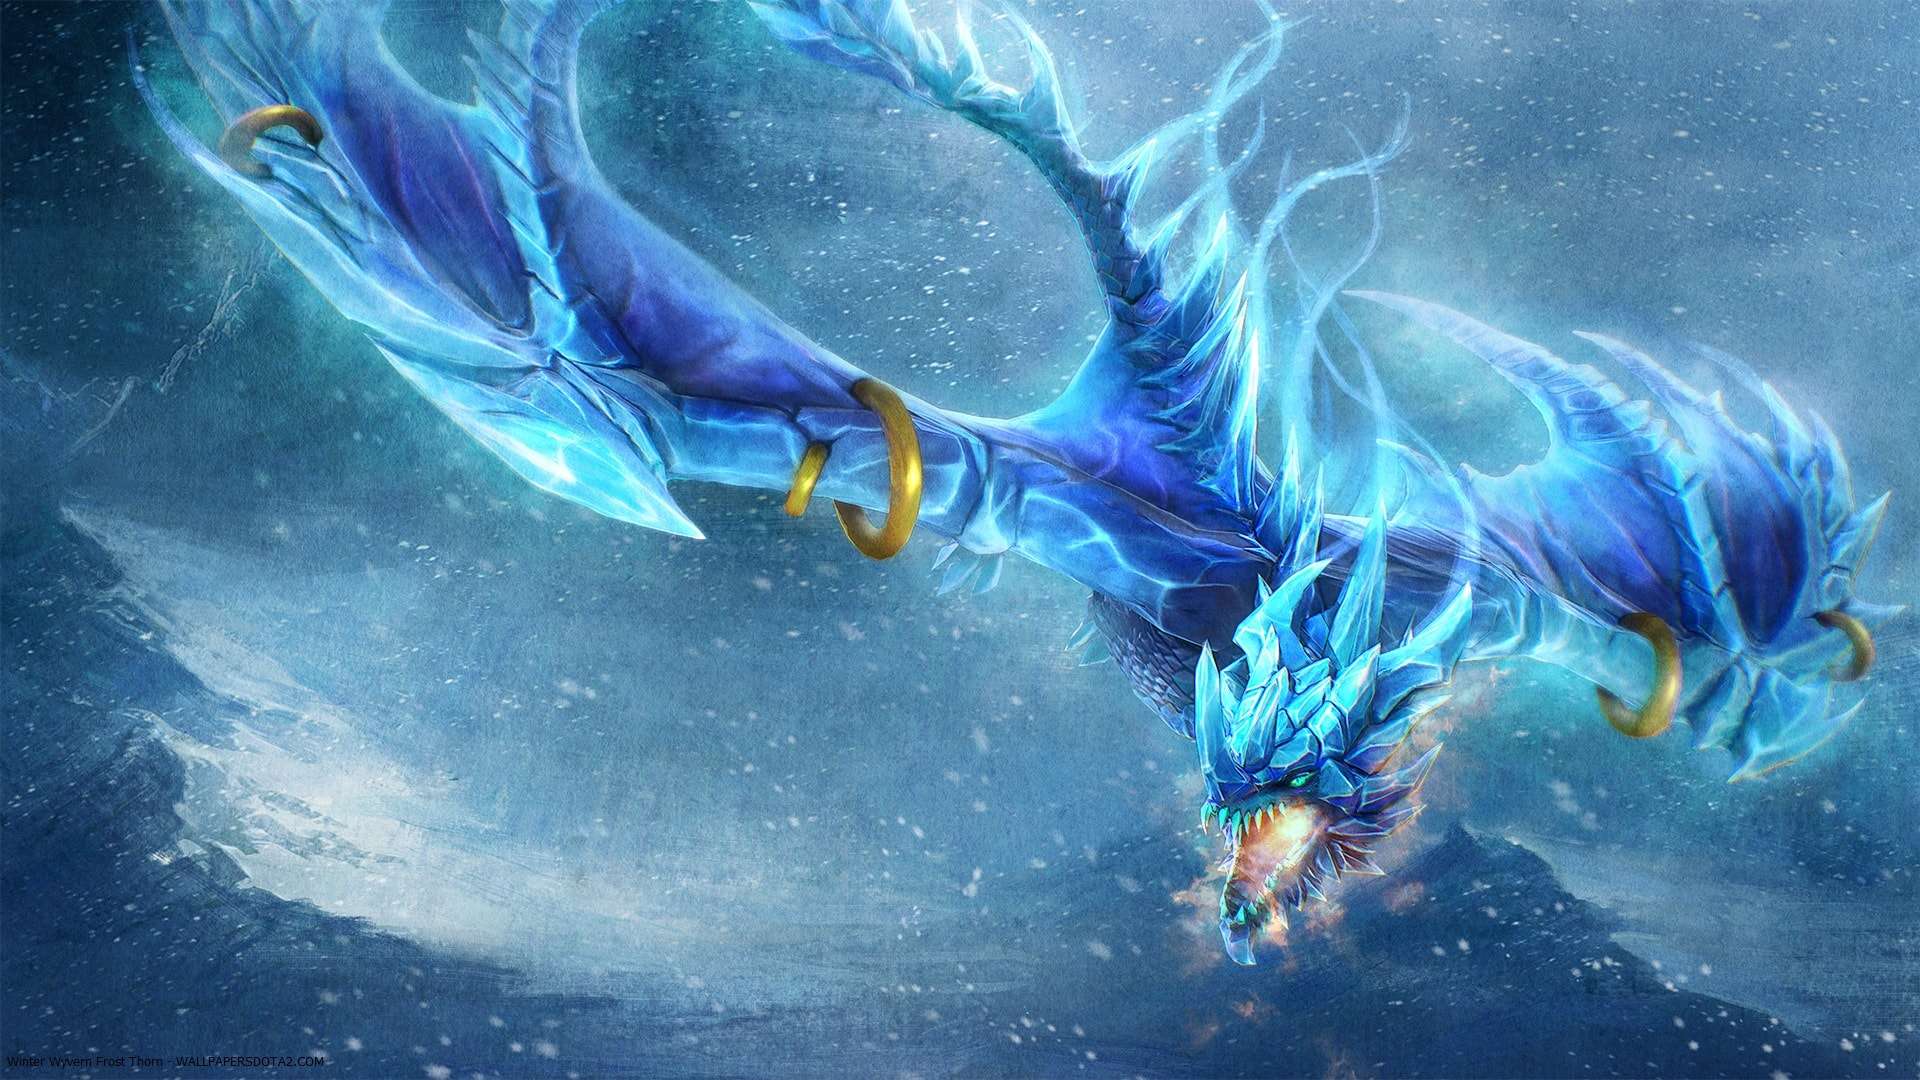 Dota 2 : Winter Wyvern Wallpaper